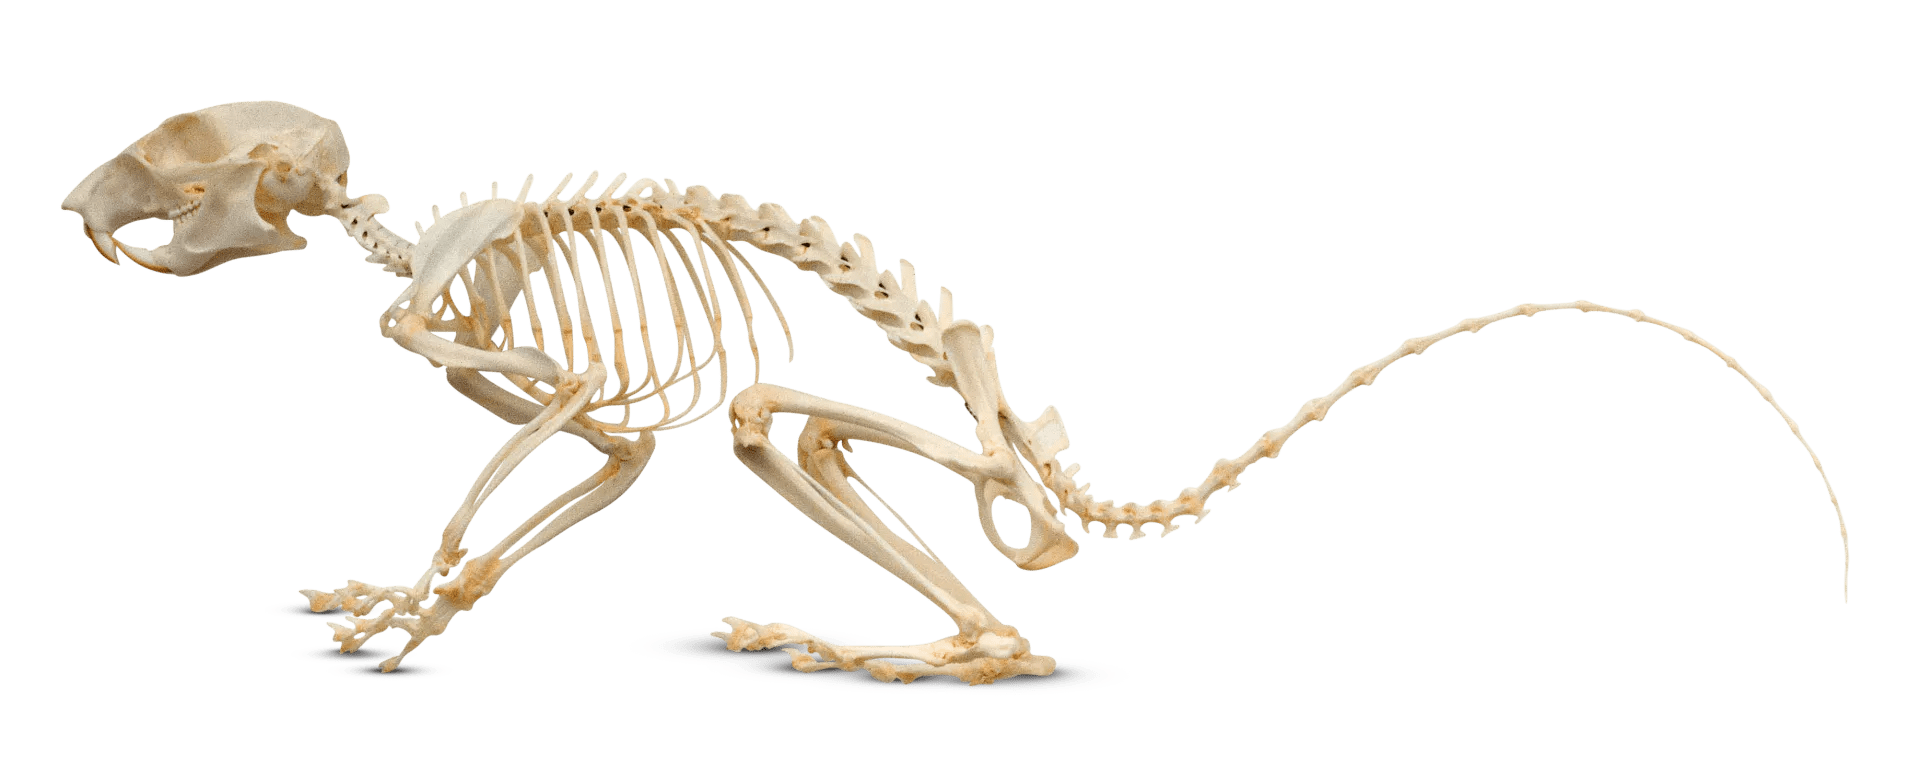 mouse skeletal diagram vacuum for 1970 chevelle rodent anatomy of a dk find out grey squirrel skeleton